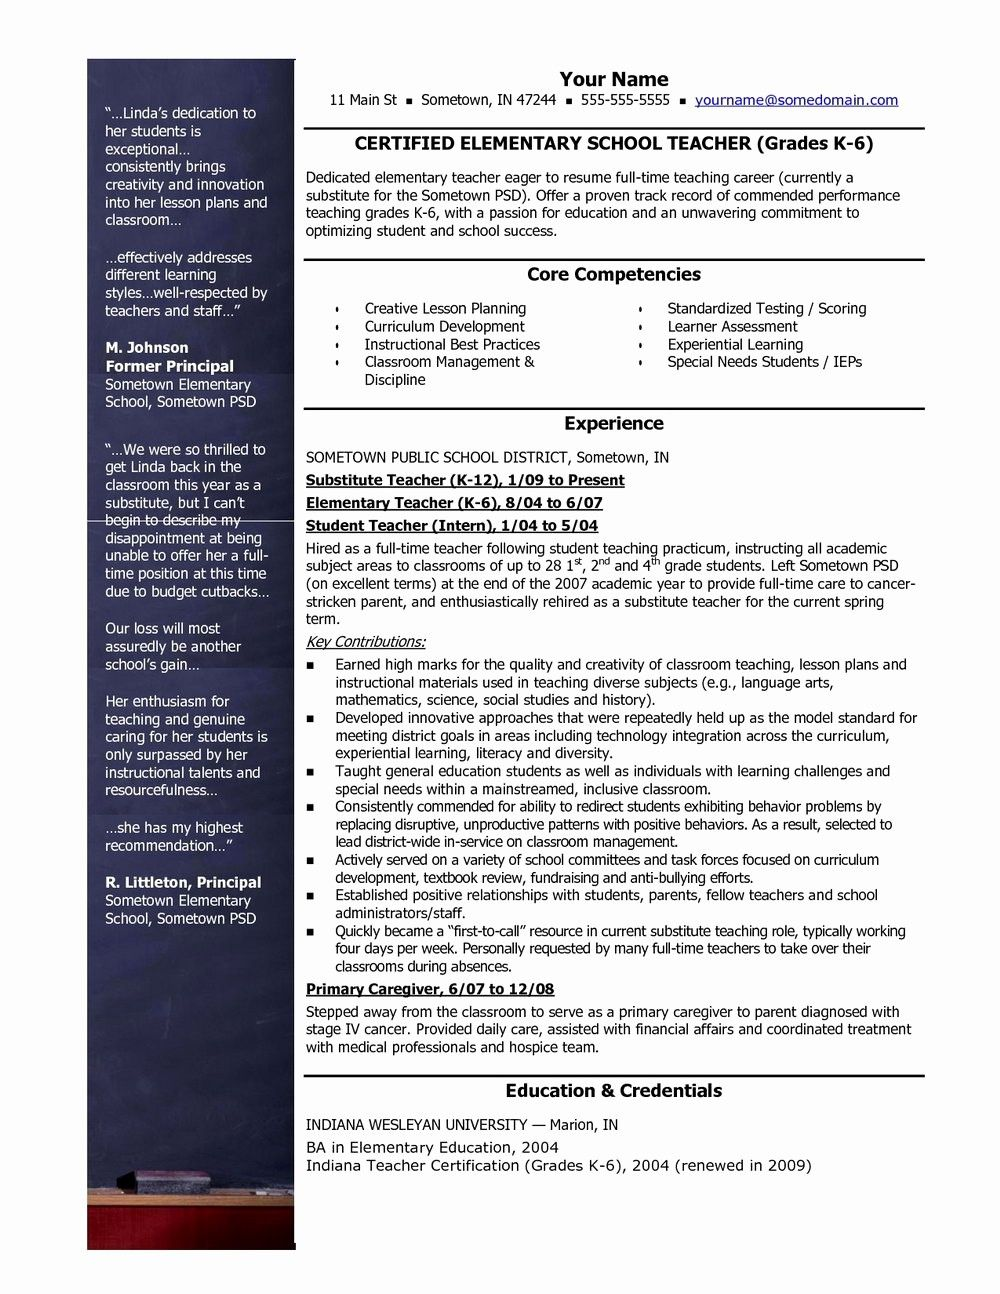 50 beautiful teacher resume templates free in 2020 with